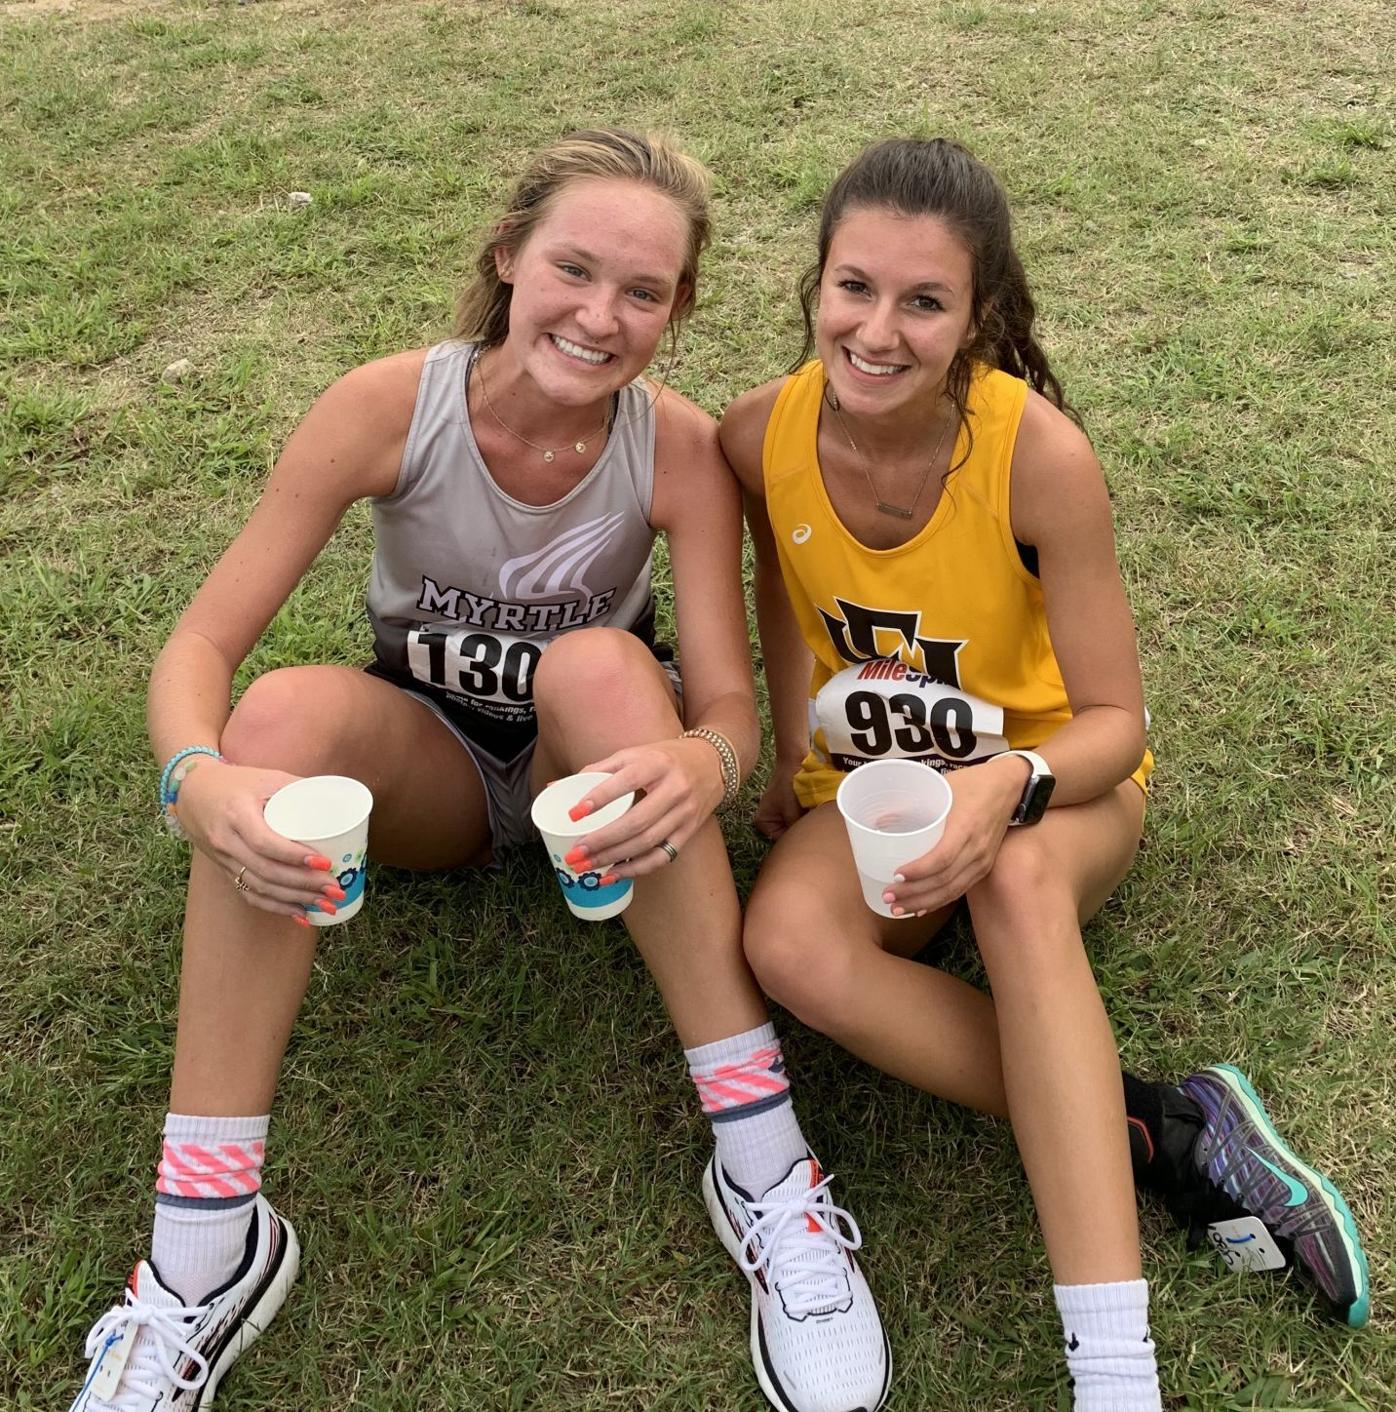 Maggie Moody and Karley Conwill